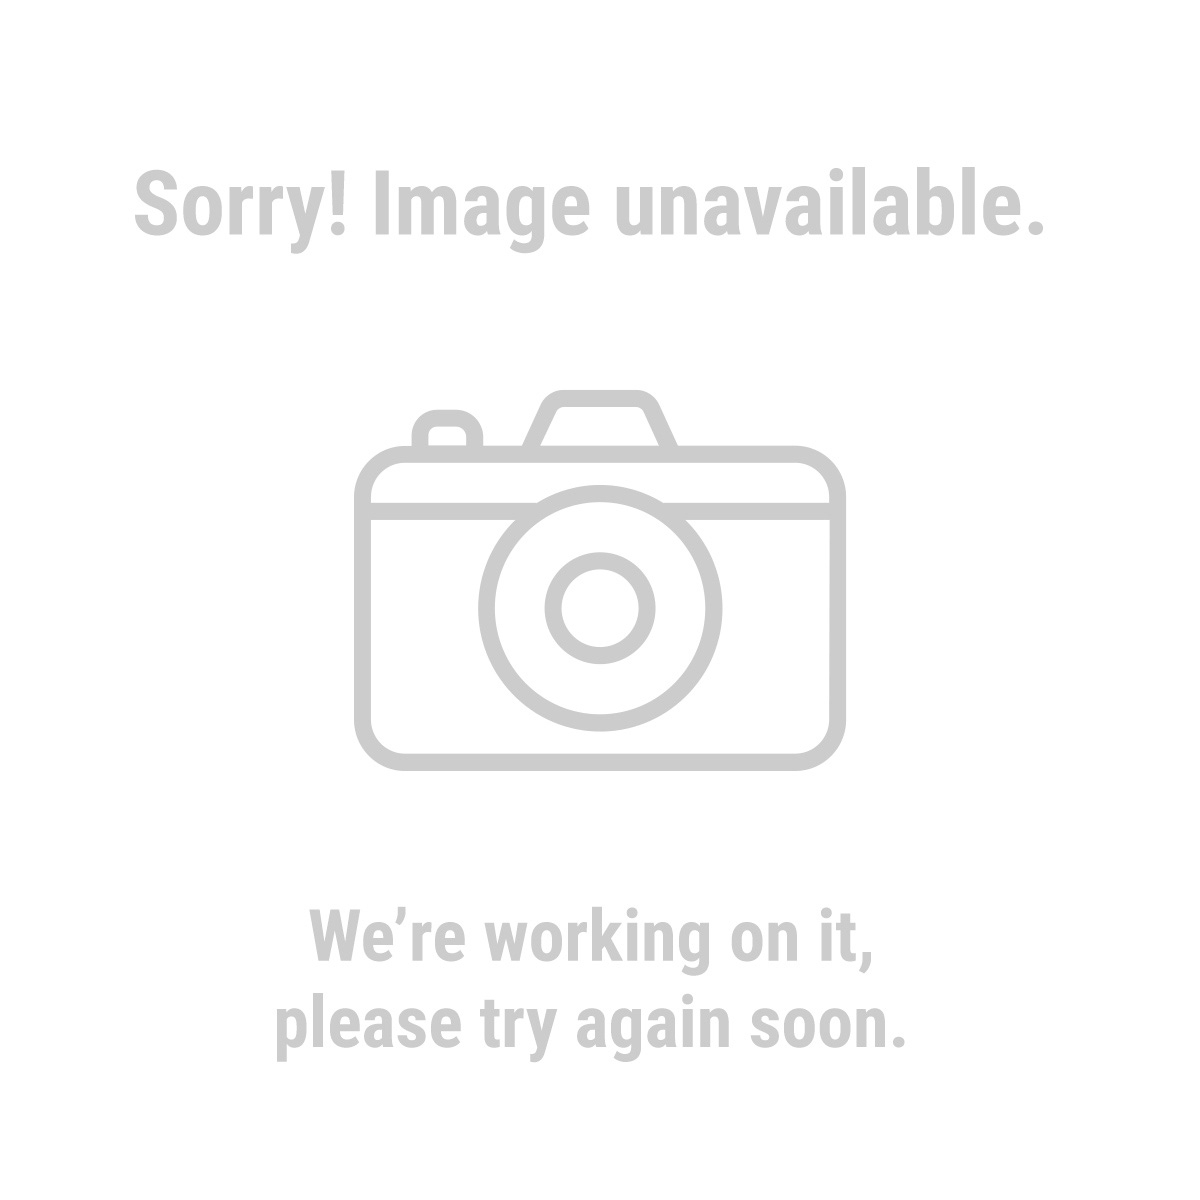 HFT 60467 19 ft. x 19-1/2 ft. All Purpose Weather Resistant Tarp